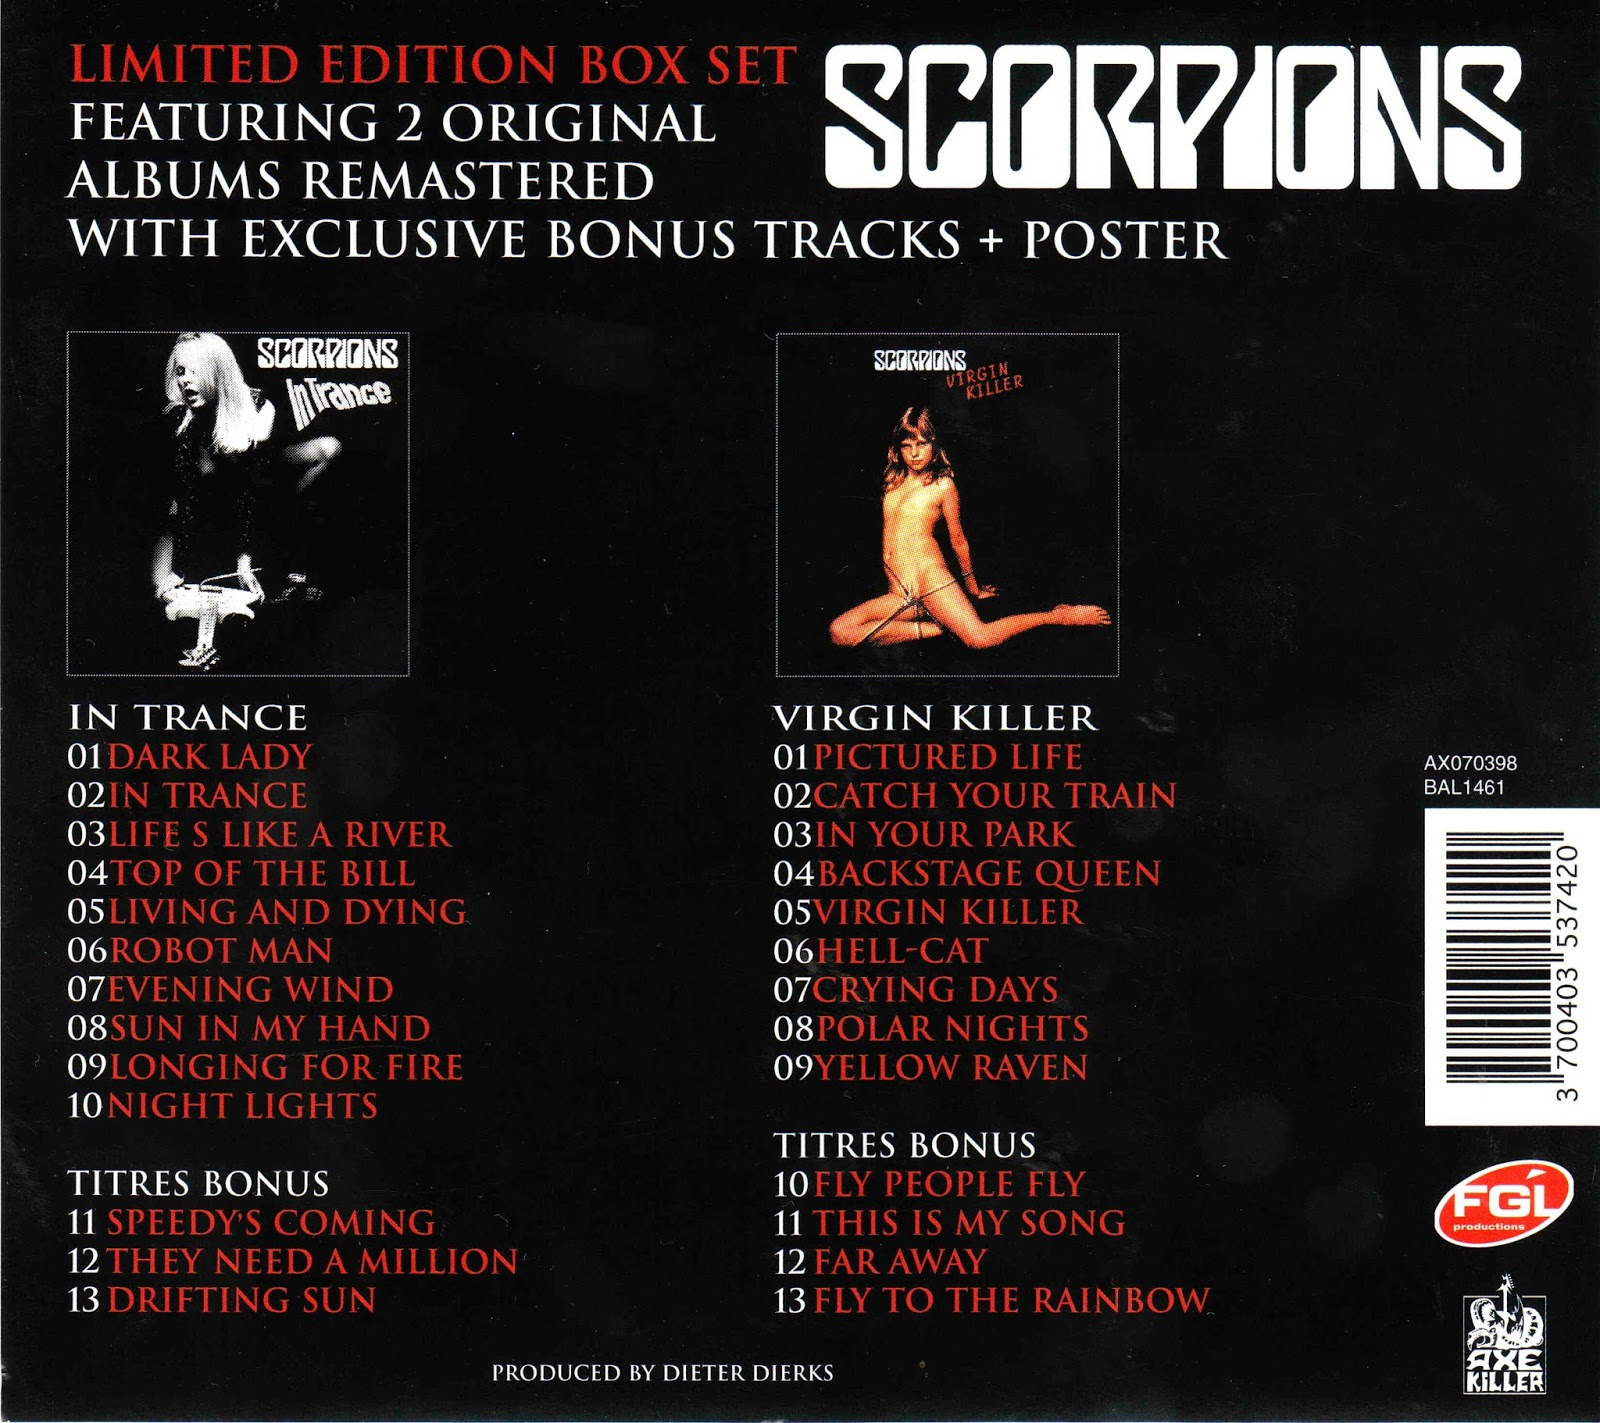 SCORPIONS VIRGIN KILLER ORIGINAL COVER JAPANESE VERSION